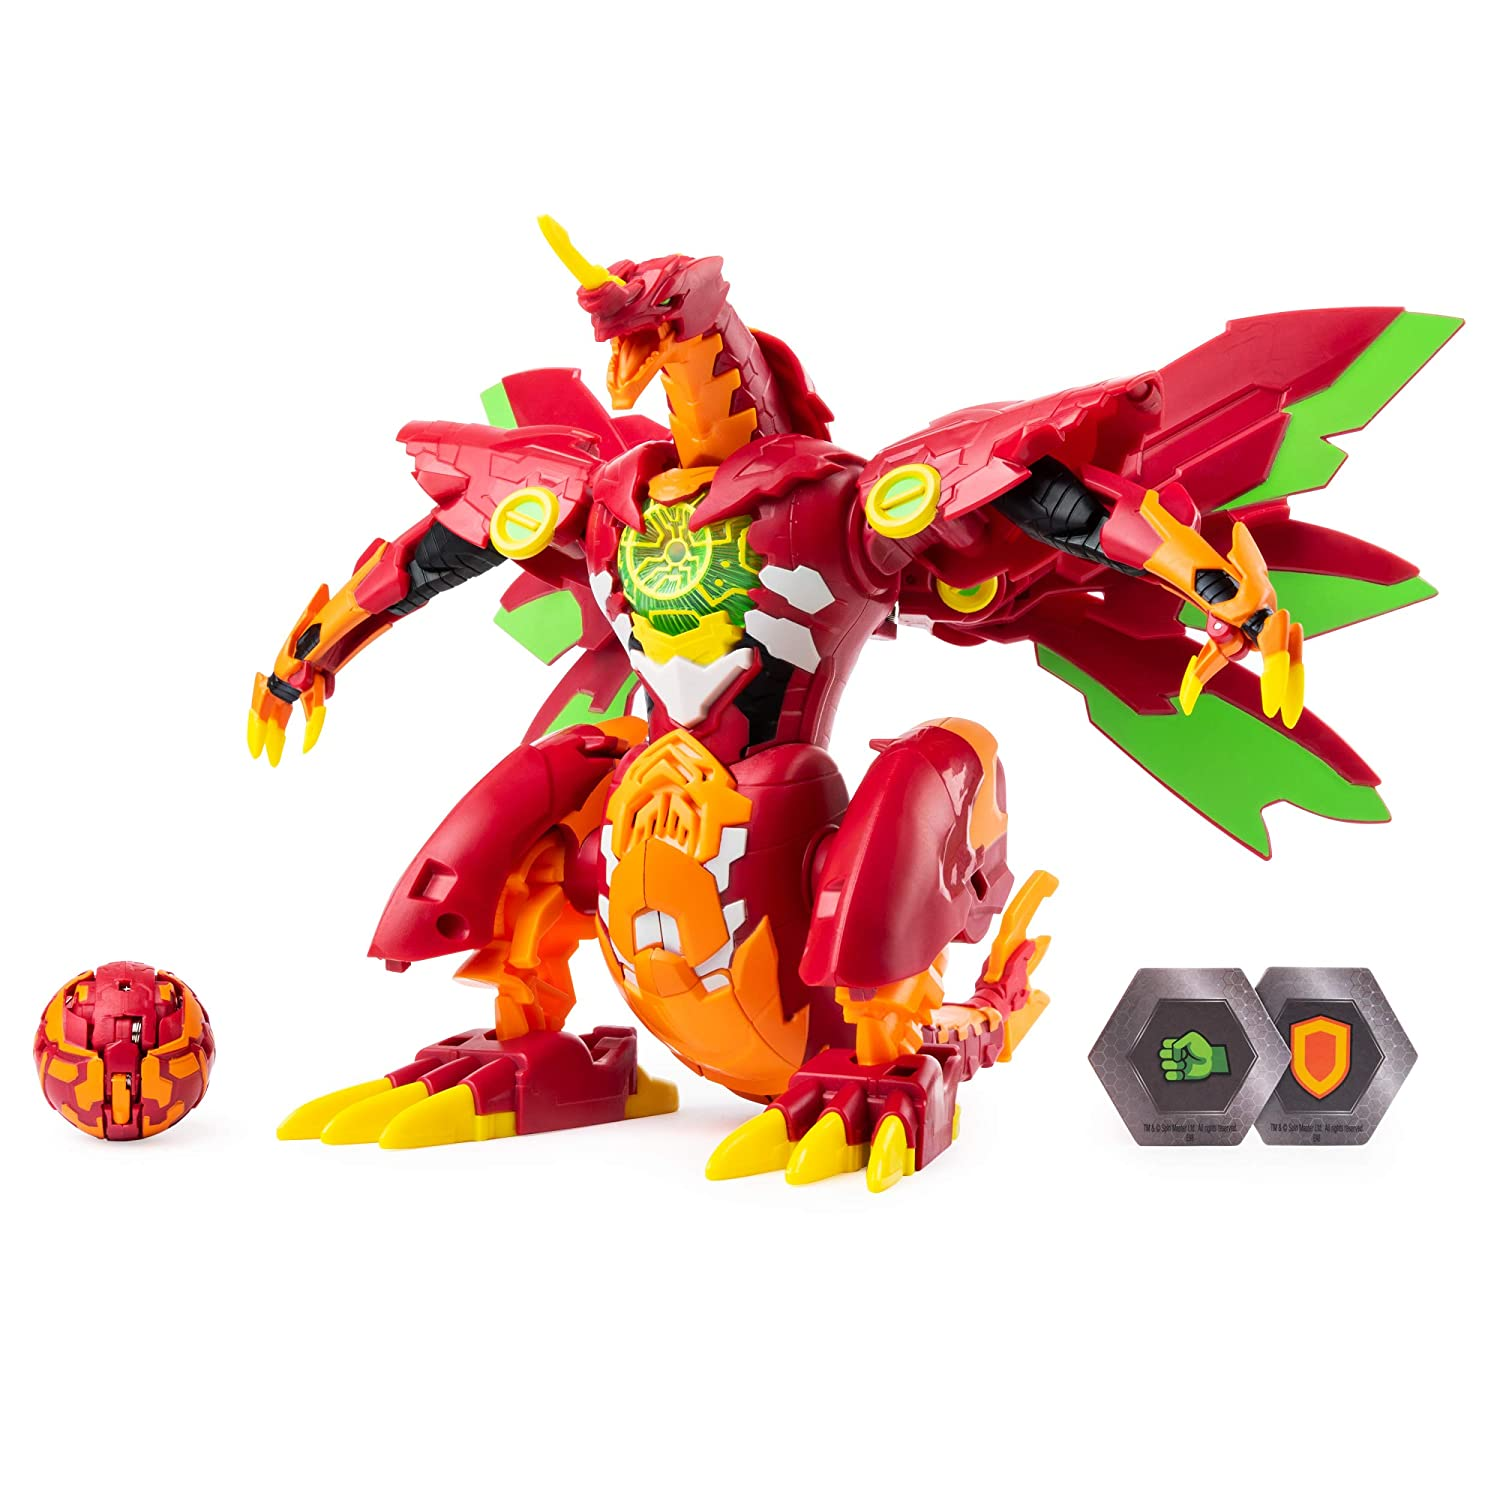 Dragonoid Maximus 8-Inch Transforming Figure with Lights and Sounds for Ages 6 and Up Bakugan